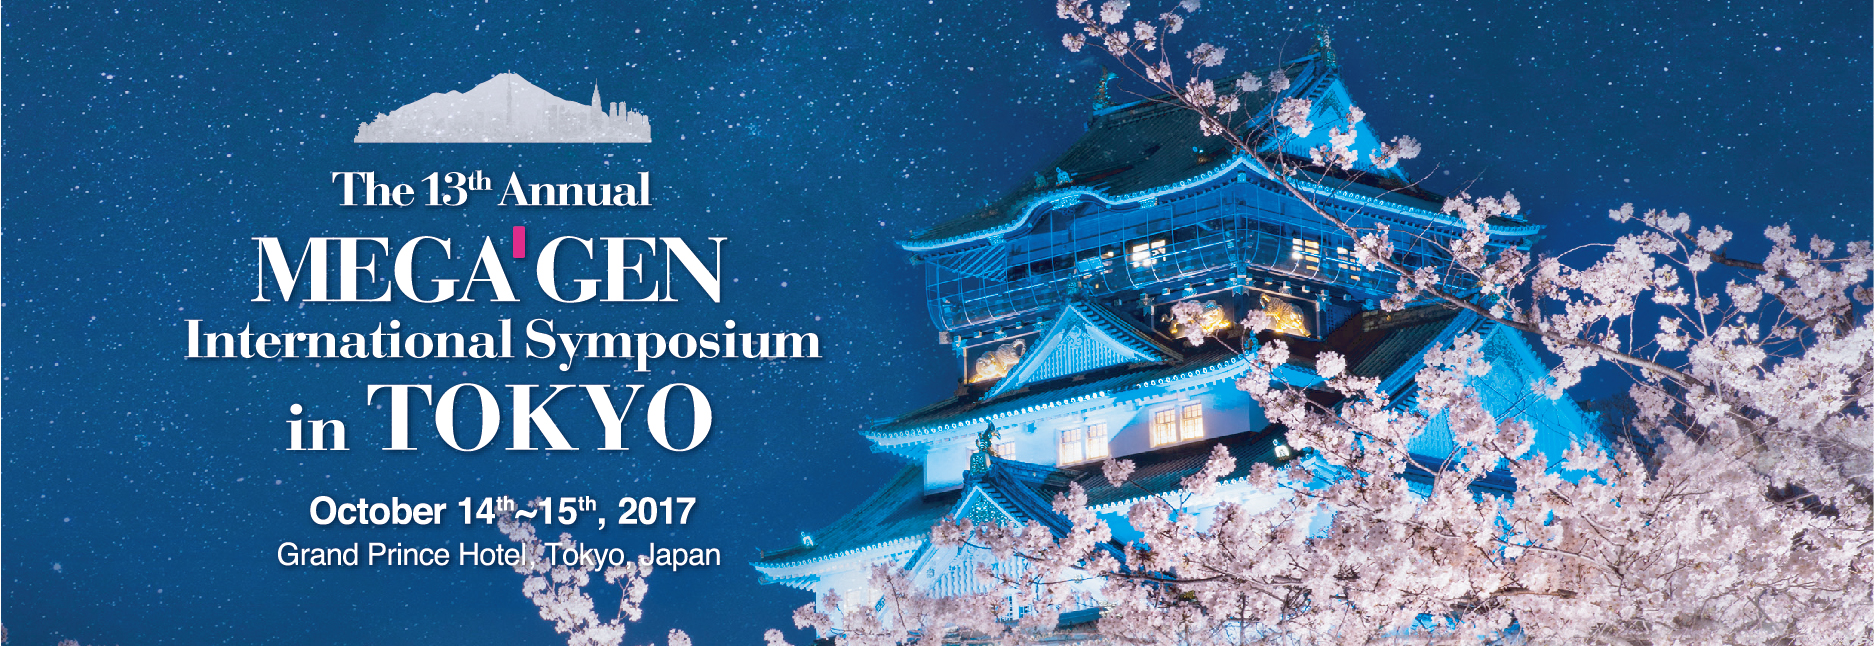 The 13th Anuual MegaGen International Symposium in Tokyo